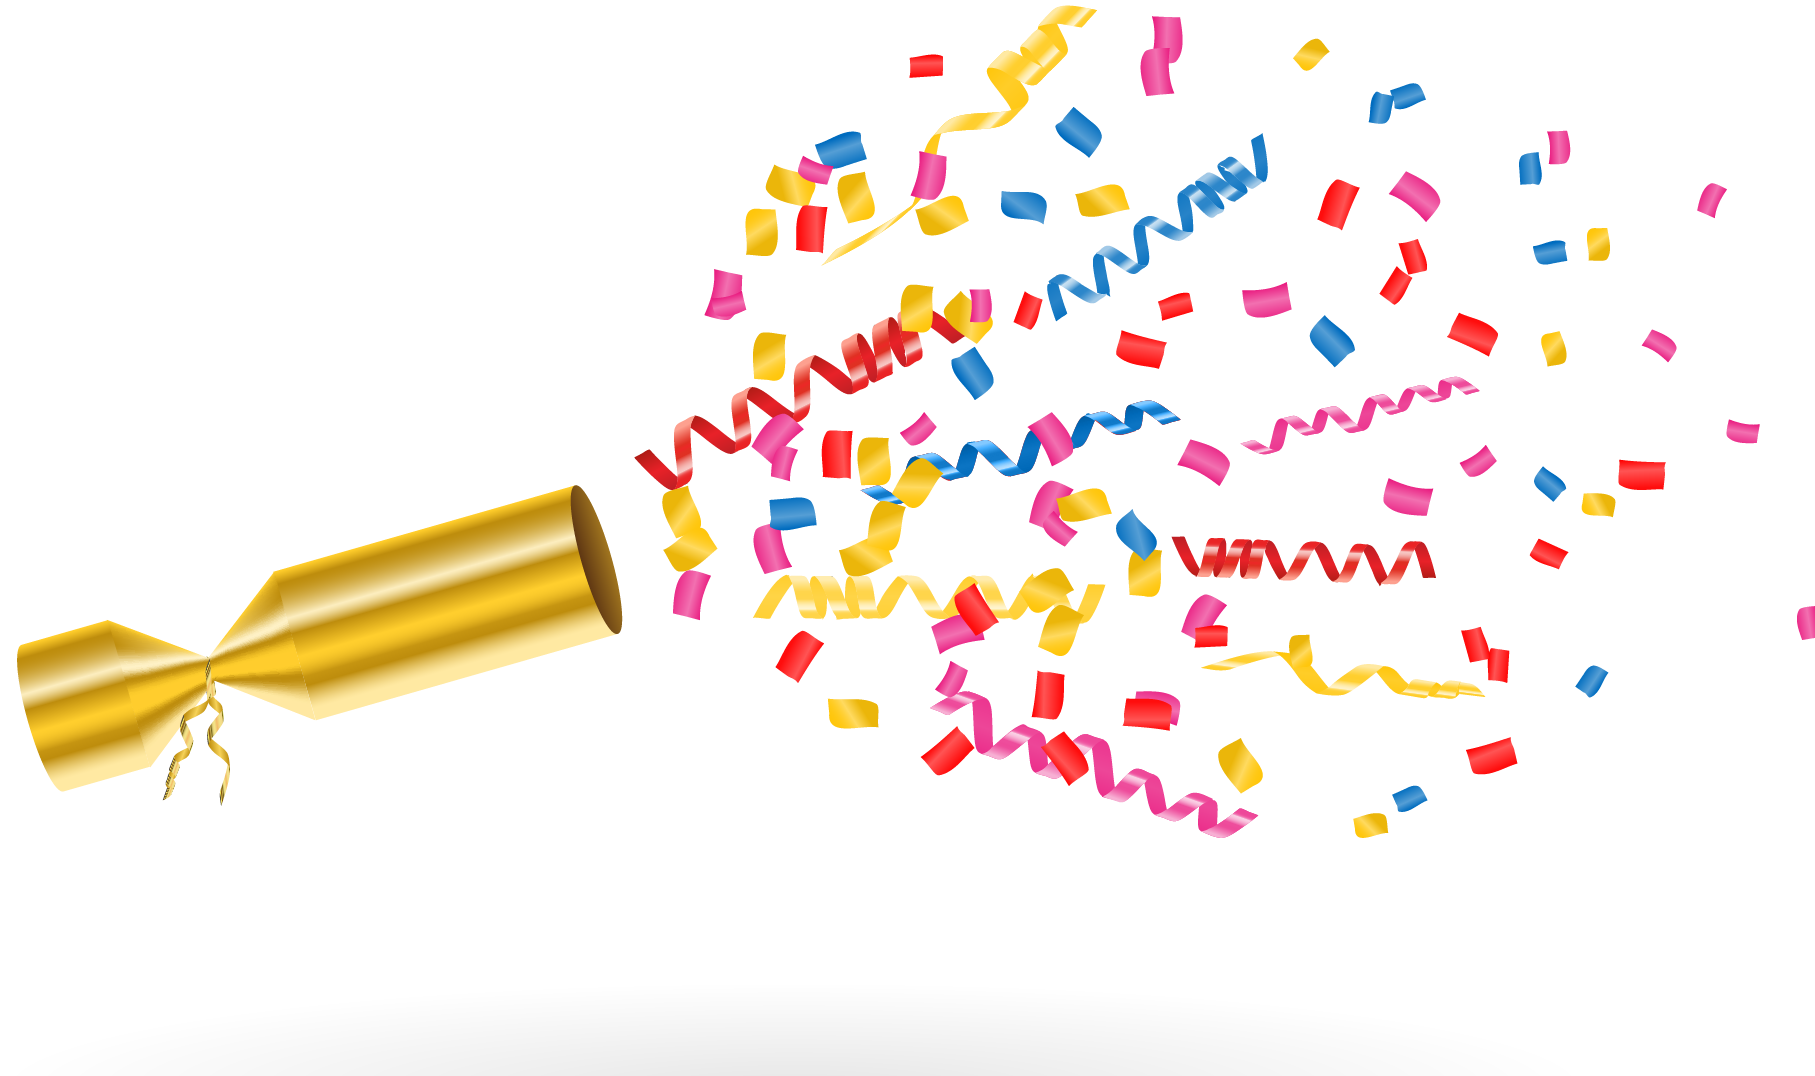 Party confetti image